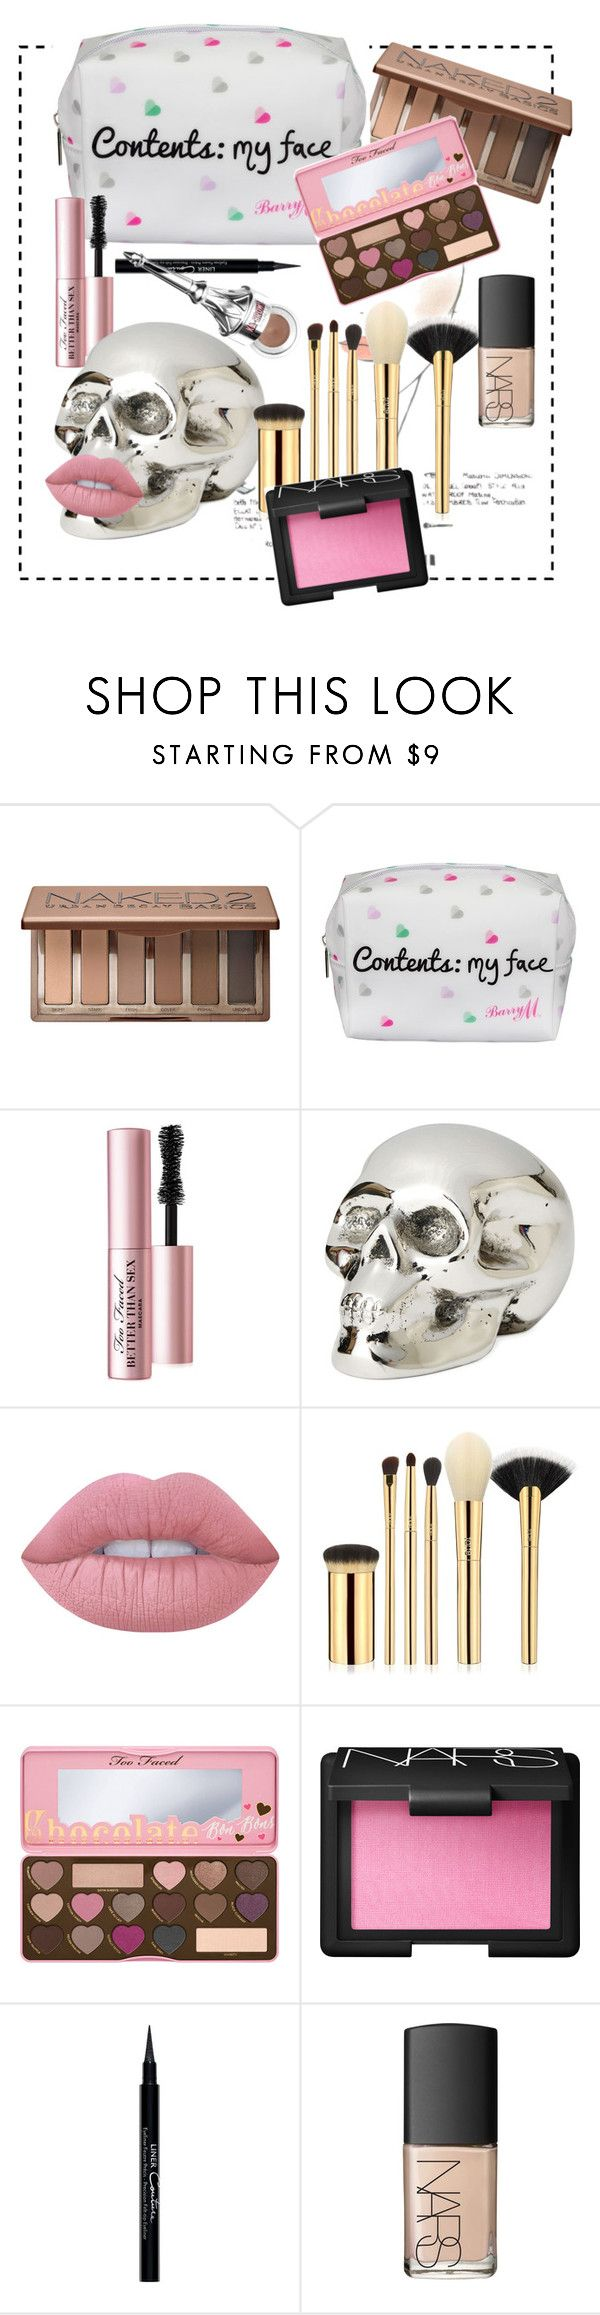 """""""Makeup pack"""" by aneta-sundova on Polyvore featuring beauty, Urban Decay, Lipsy, Too Faced Cosmetics, Chanel, Jan Barboglio, Lime Crime, tarte, NARS Cosmetics and Givenchy"""